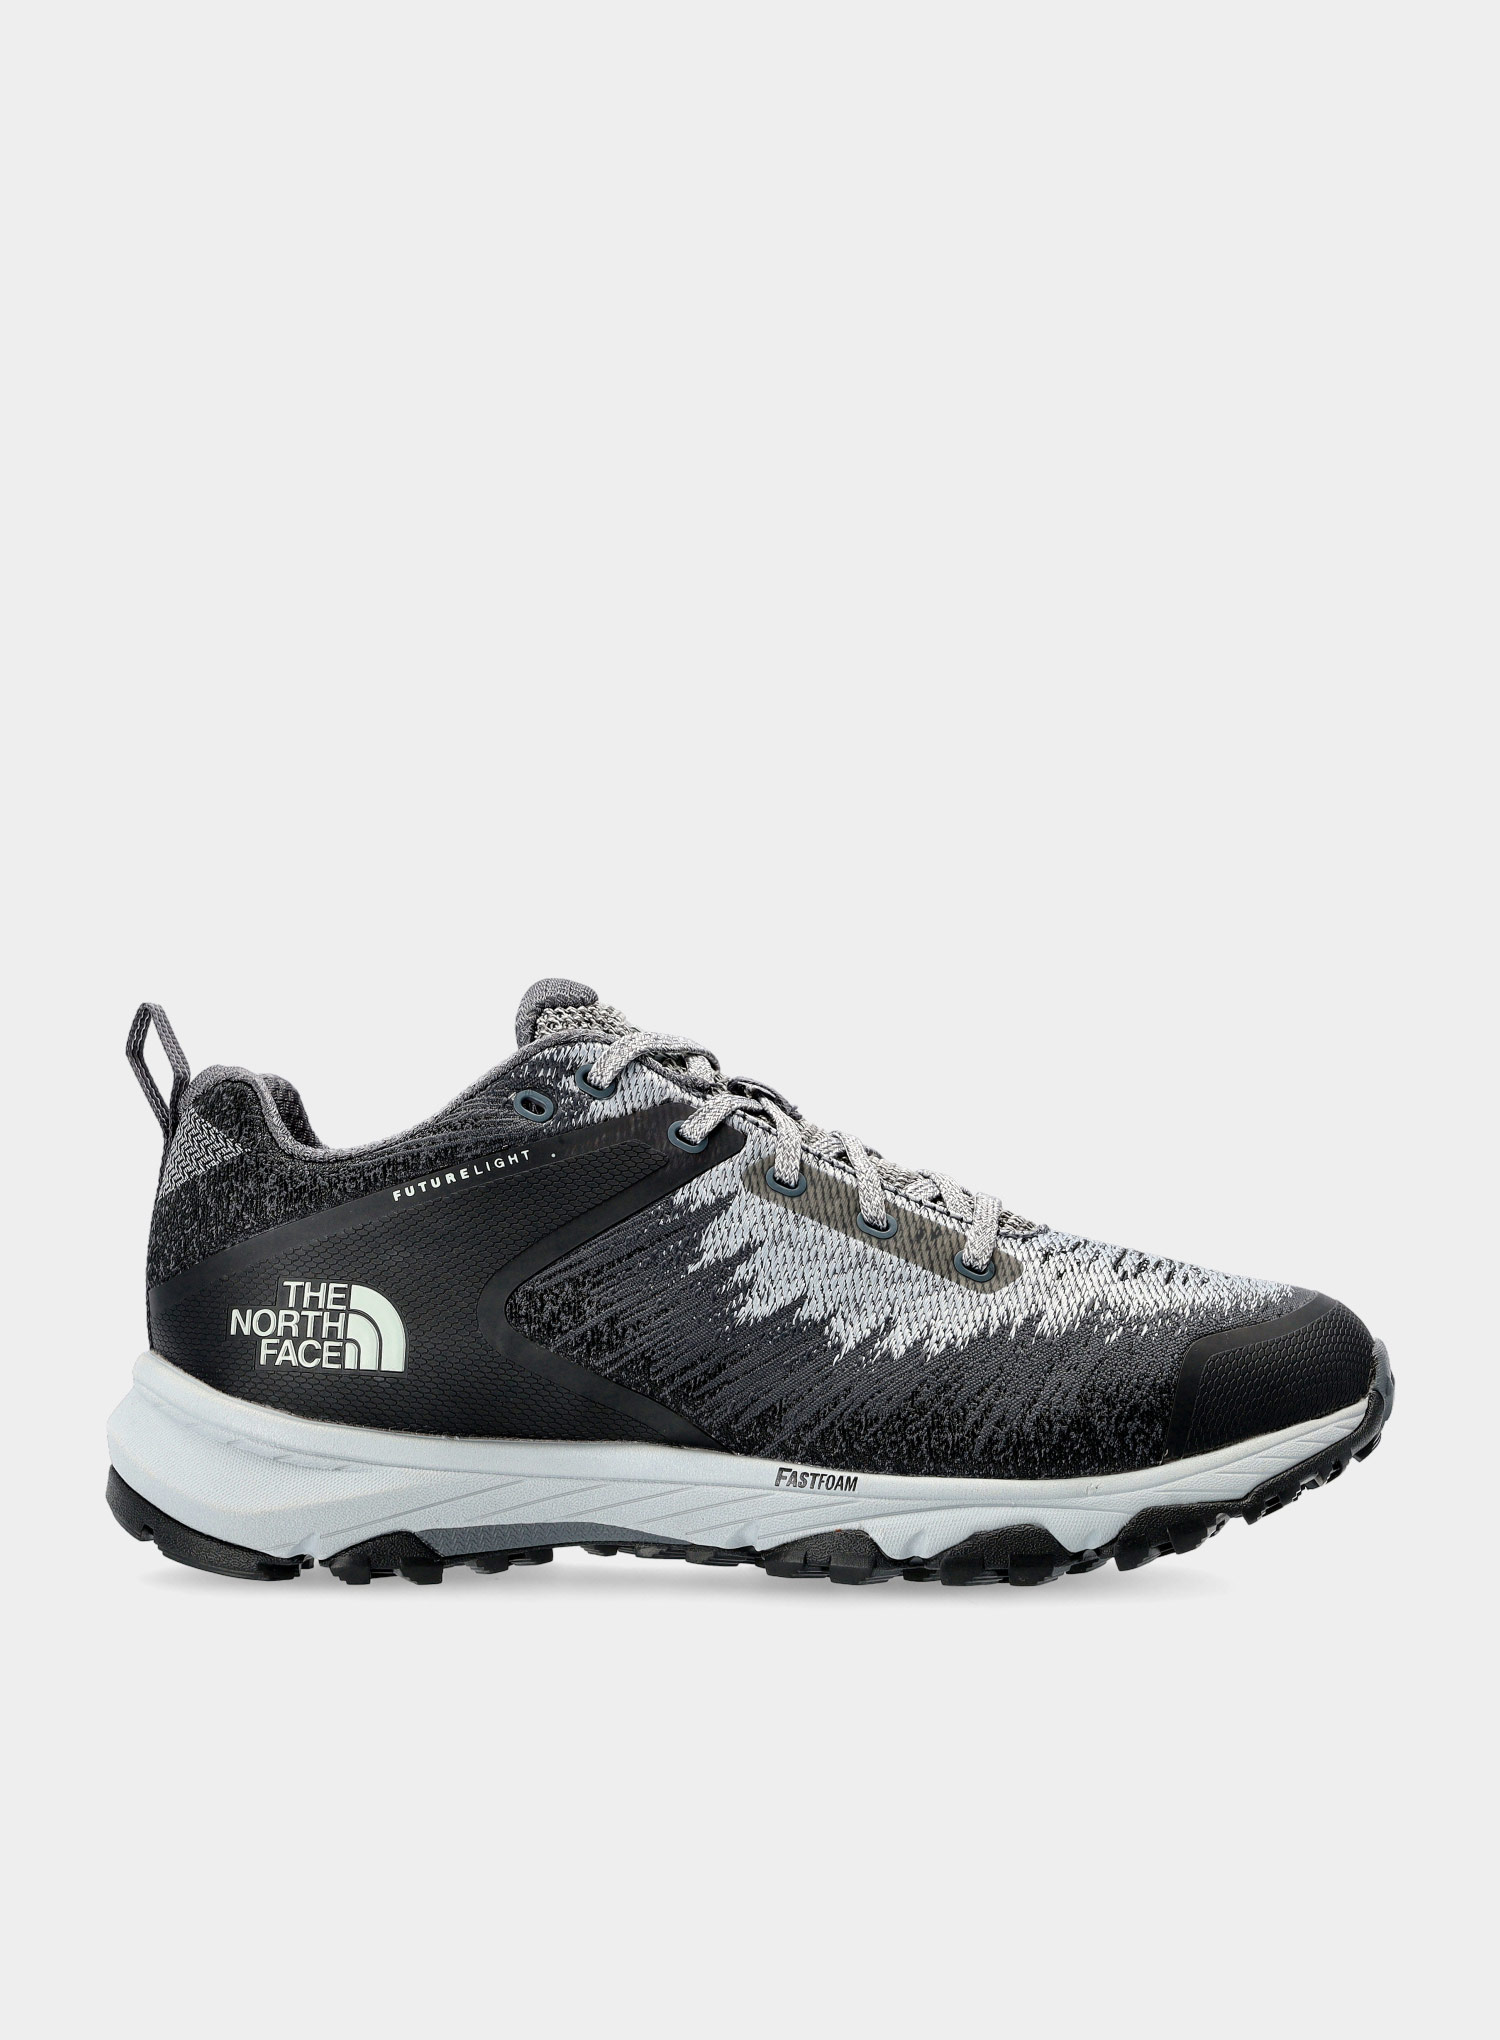 Buty The North Face Ultra Fastpack IV FutureLight - grey - zdjęcie nr. 1